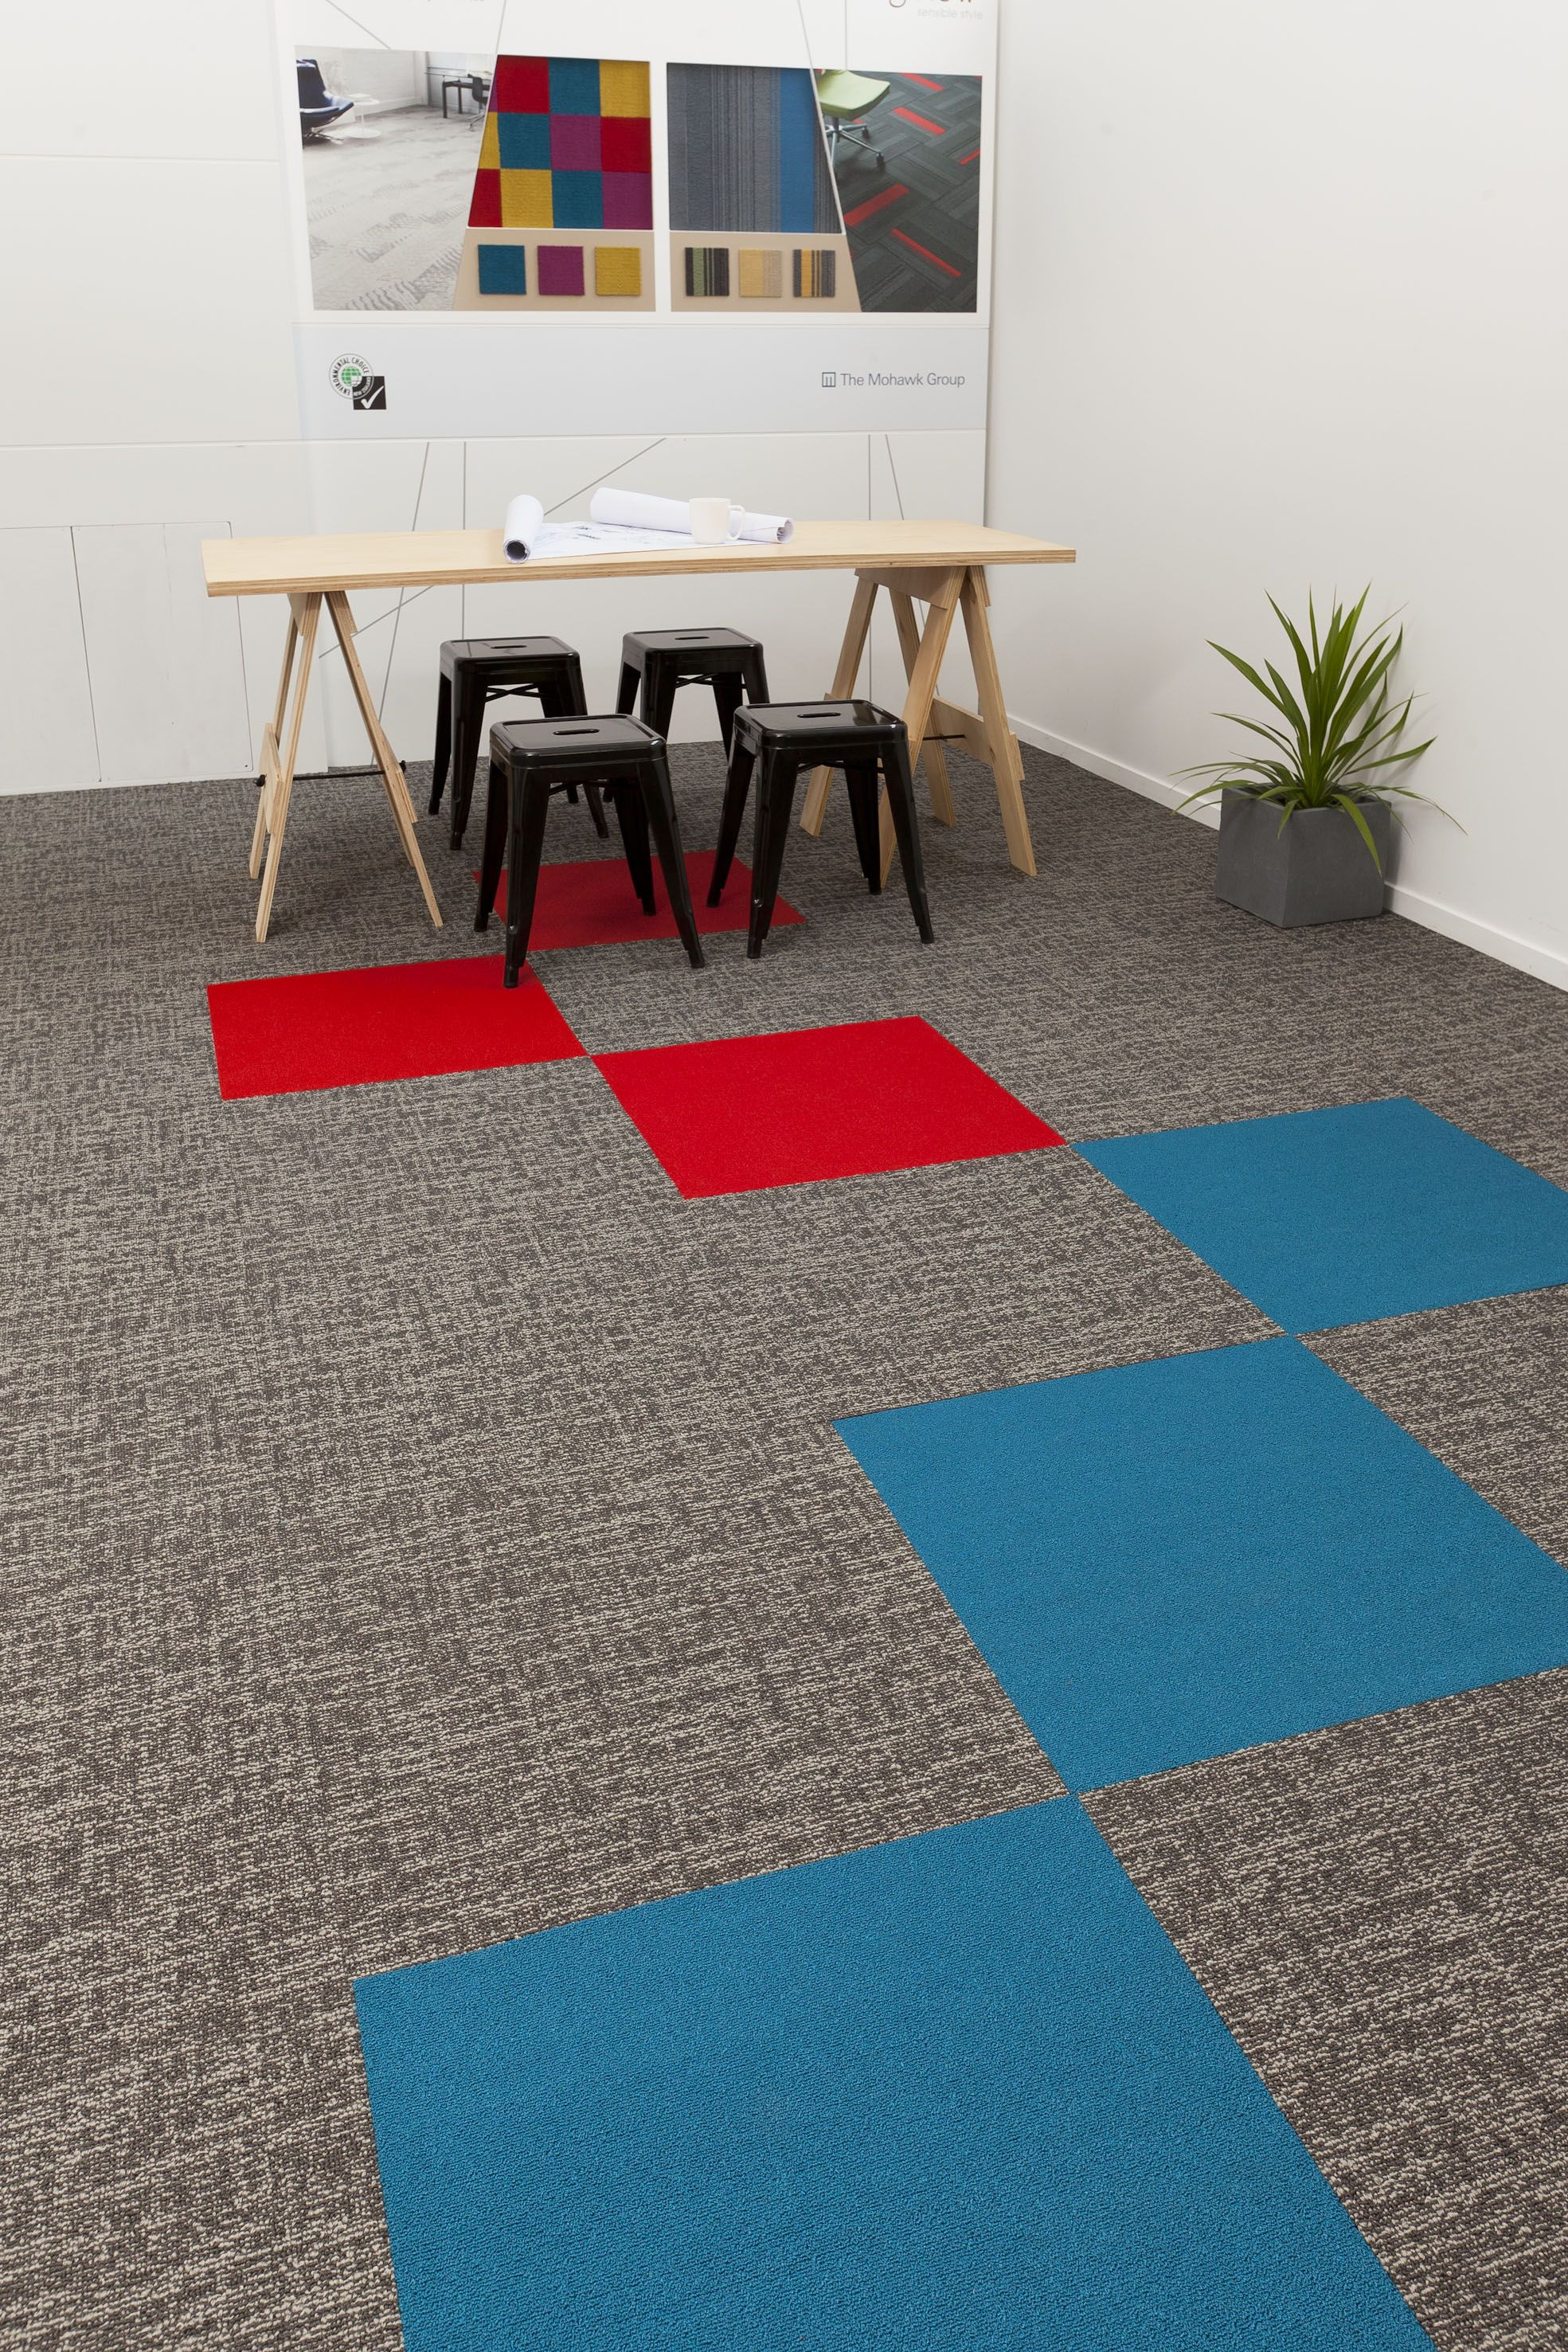 Nz Stocked Commercial Modular Carpet Tiles Bigelow Delhi Slate By Mohawk With Colorbeat Feature Insert Ti Modular Carpet Tiles Carpet Tiles Design Carpet Tiles